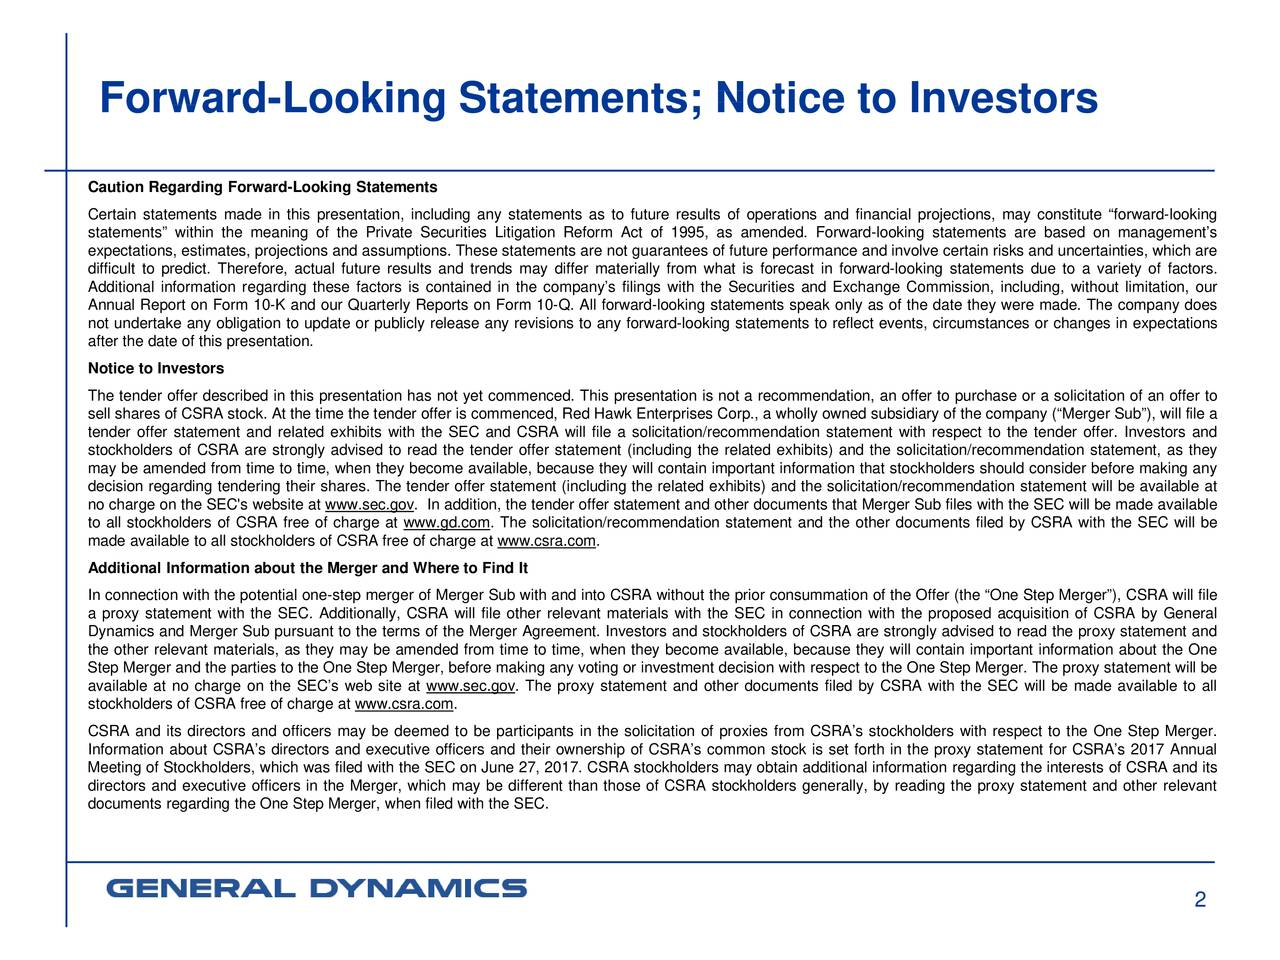 """Caution Regarding Forward-Looking Statements Certain statements made in this presentation, including any statements as to future results of operations and financial projections, may constitute """"forward-looking statements"""" within the meaning of the Private Securities Litigation Reform Act of 1995, as amended. Forward-looking statements are based on management's expectations, estimates, projections and assumptions. These statements are not guarantees of future performance and involve certain risks and uncertainties, which are difficult to predict. Therefore, actual future results and trends may differ materially from what is forecast in forward-looking statements due to a variety of factors. Additional information regarding these factors is contained in the company's filings with the Securities and Exchange Commission, including, without limitation, our Annual Report on Form 10-K and our Quarterly Reports on Form 10-Q. All forward-looking statements speak only as of the date they were made. The company does not undertake any obligation to update or publicly release any revisions to any forward-looking statements to reflect events, circumstances or changes in expectations after the date of this presentation. Notice to Investors The tender offer described in this presentation has not yet commenced. This presentation is not a recommendation, an offer to purchase or a solicitation of an offer to sell shares of CSRA stock. At the time the tender offer is commenced, Red Hawk Enterprises Corp., a wholly owned subsidiary of the company (""""Merger Sub""""), will file a tender offer statement and related exhibits with the SEC and CSRA will file a solicitation/recommendation statement with respect to the tender offer. Investors and stockholders of CSRA are strongly advised to read the tender offer statement (including the related exhibits) and the solicitation/recommendation statement, as they may be amended from time to time, when they become available, because they will contain imp"""